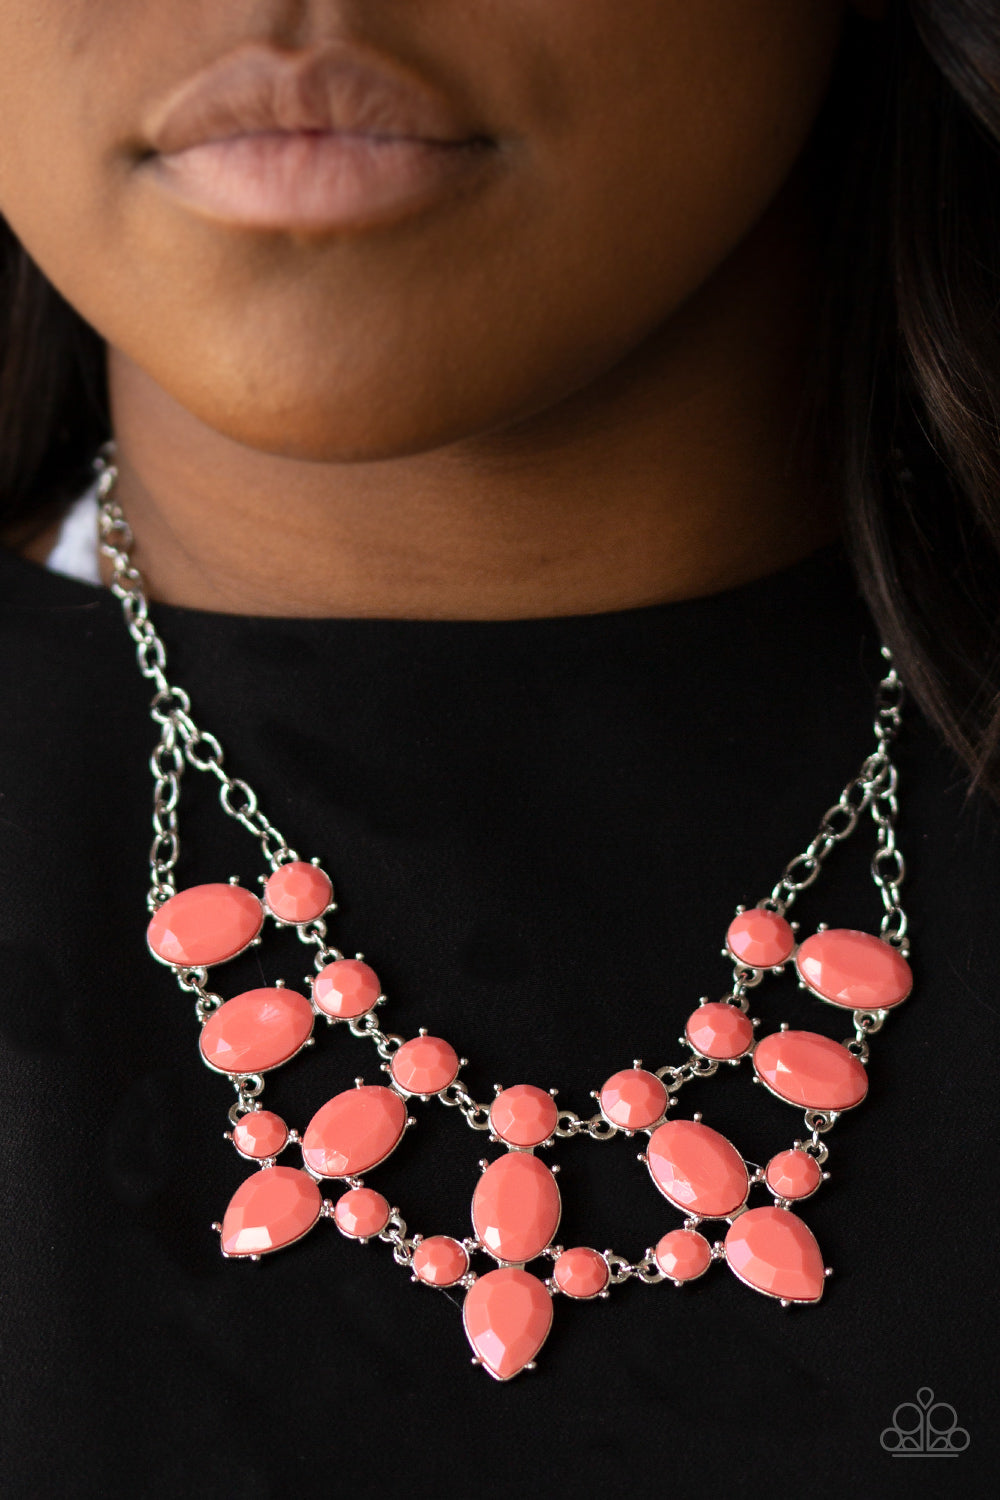 Goddess Glow - Coral Necklace